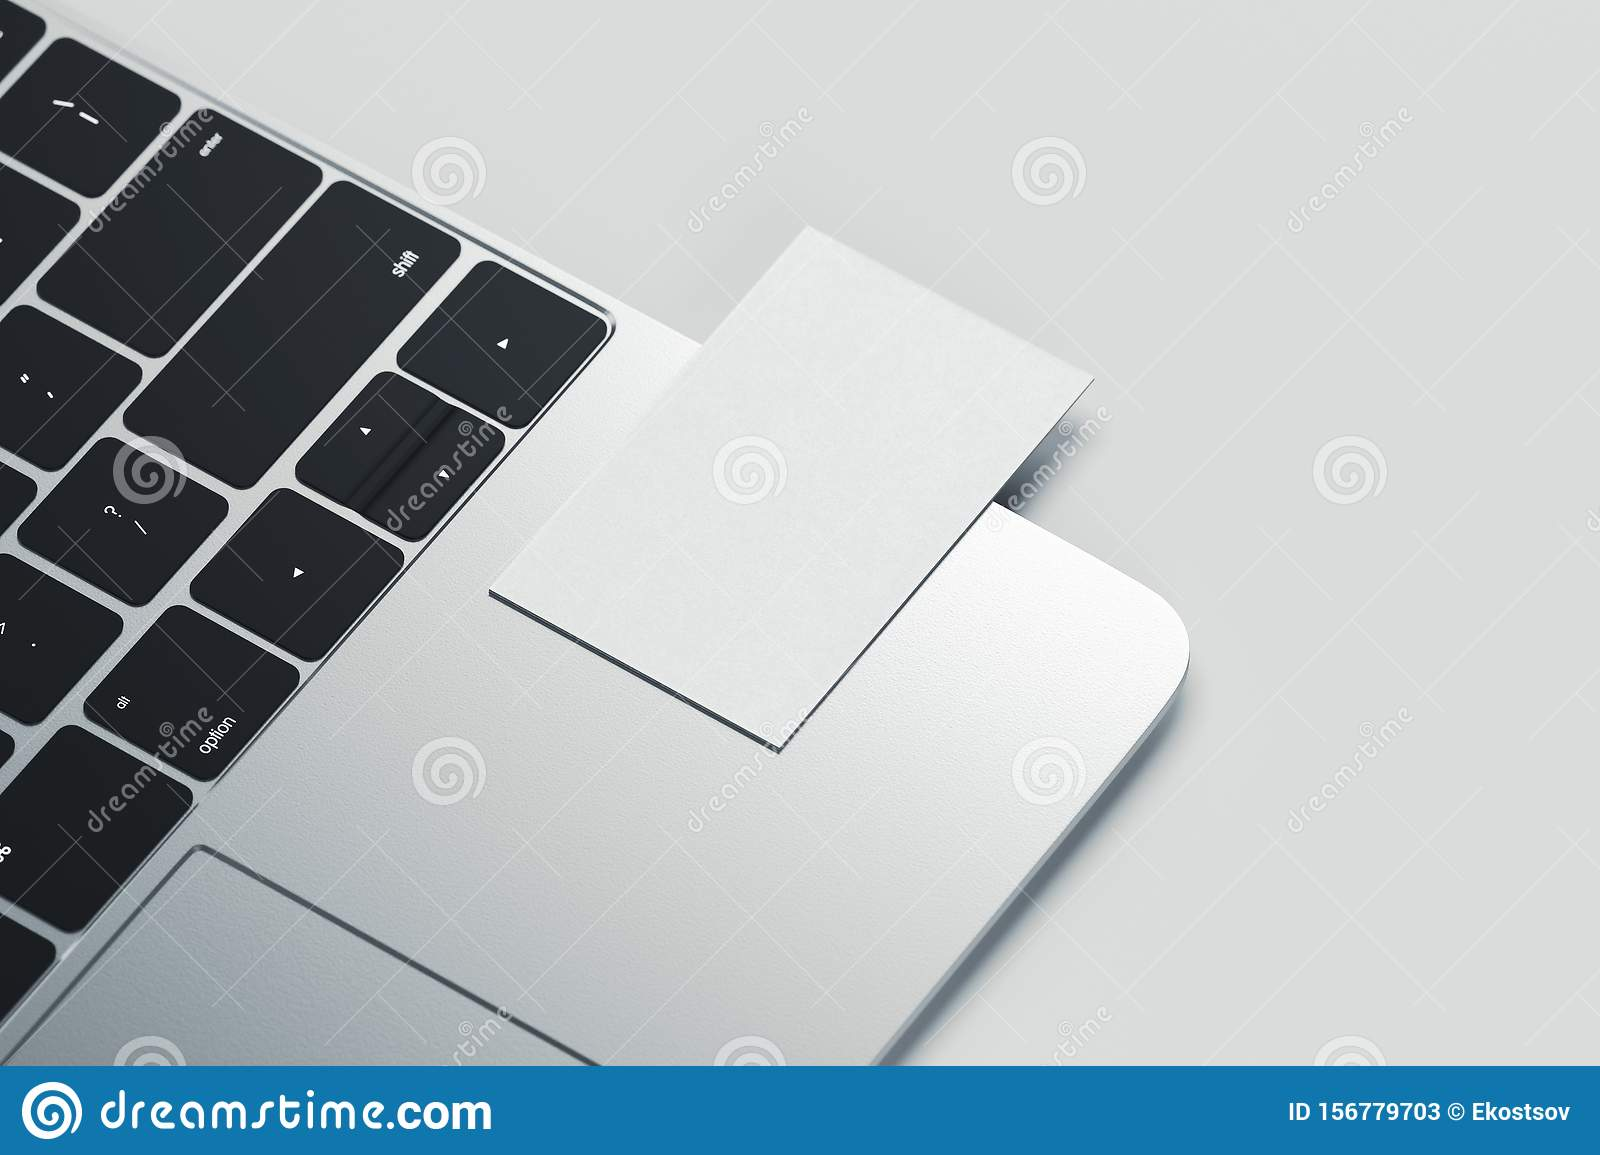 Close up of white realistic modern business card on laptop on light background. 3d rendering.